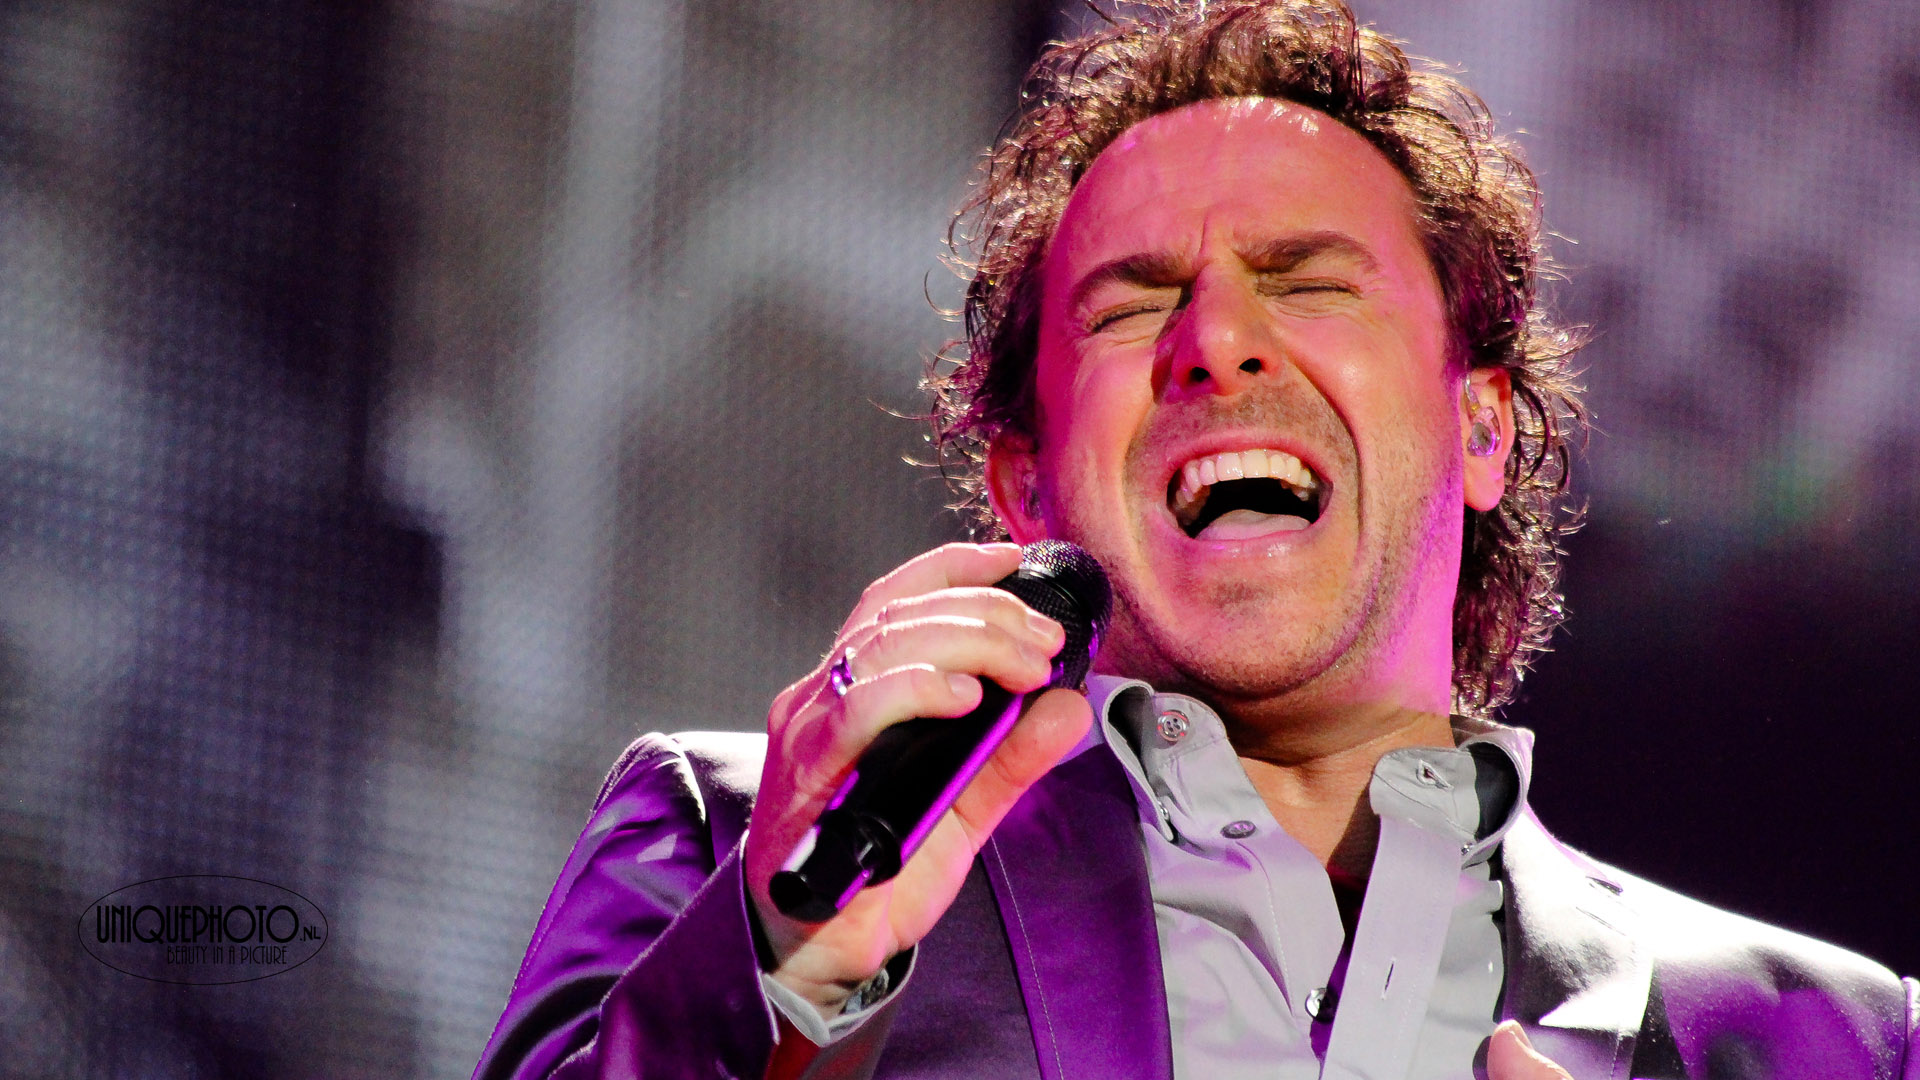 Nice Images Collection: Marco Borsato Desktop Wallpapers